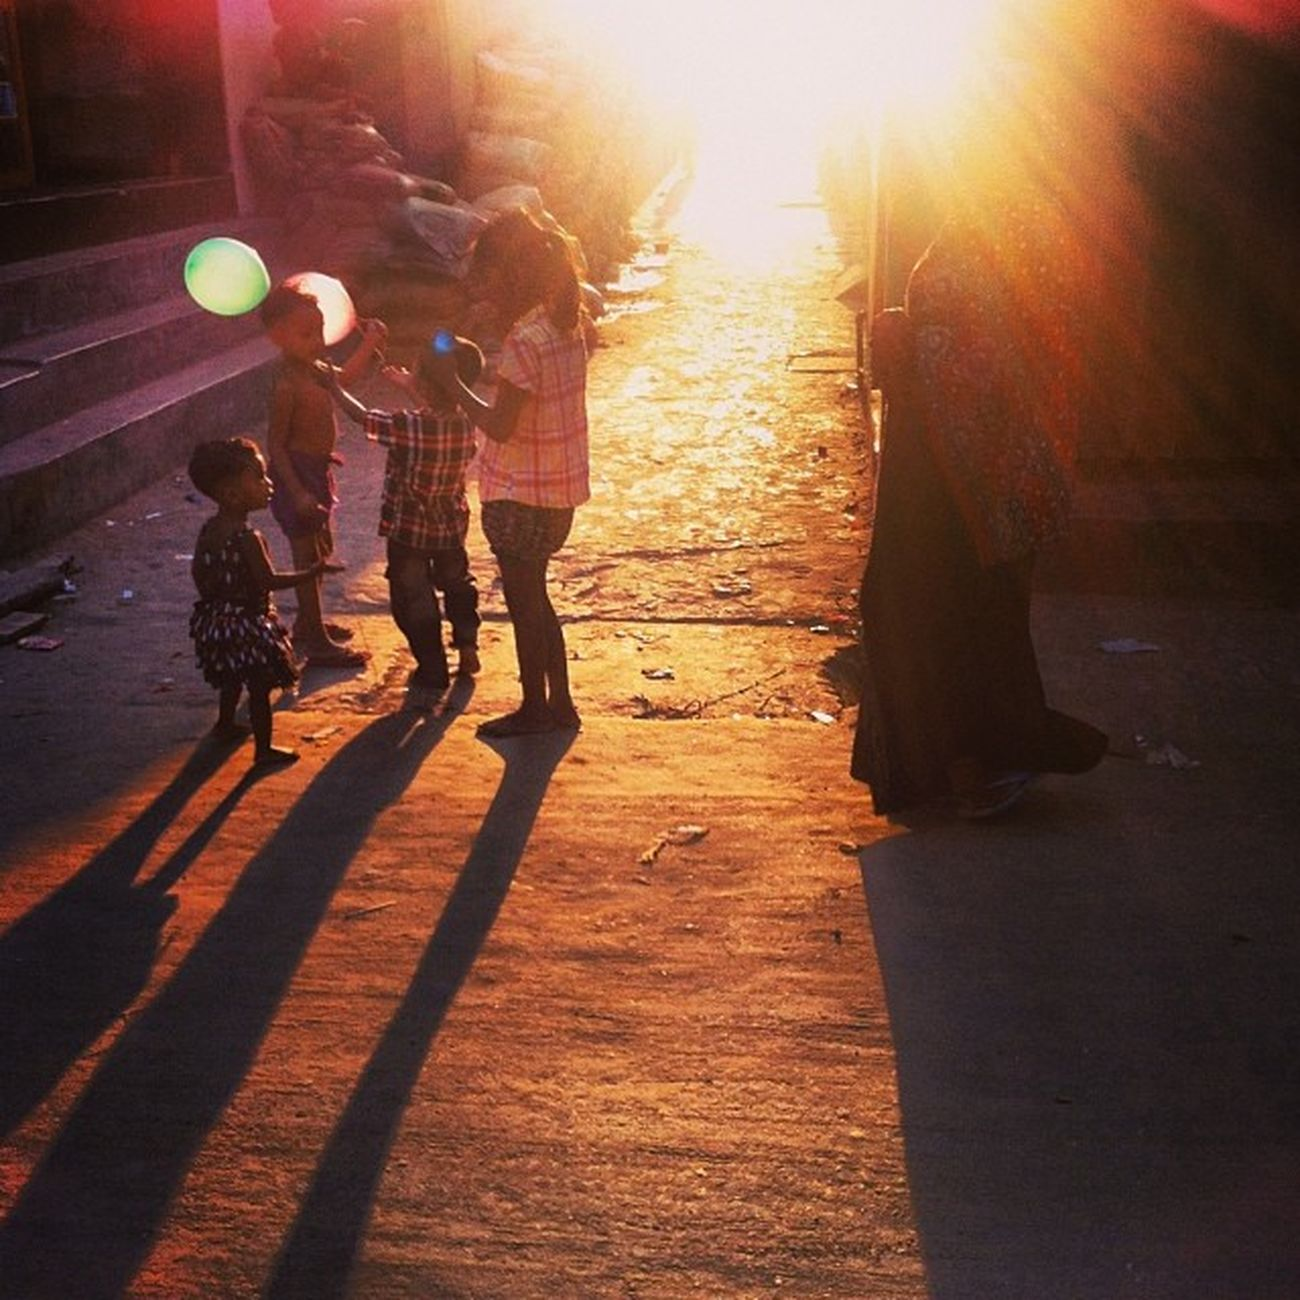 Sun Ray Light Shadow Winter Evening Children Play Balloon Street Chaktai Chittagong The Photojournalist - 2017 EyeEm Awards The Street Photographer - 2017 EyeEm Awards